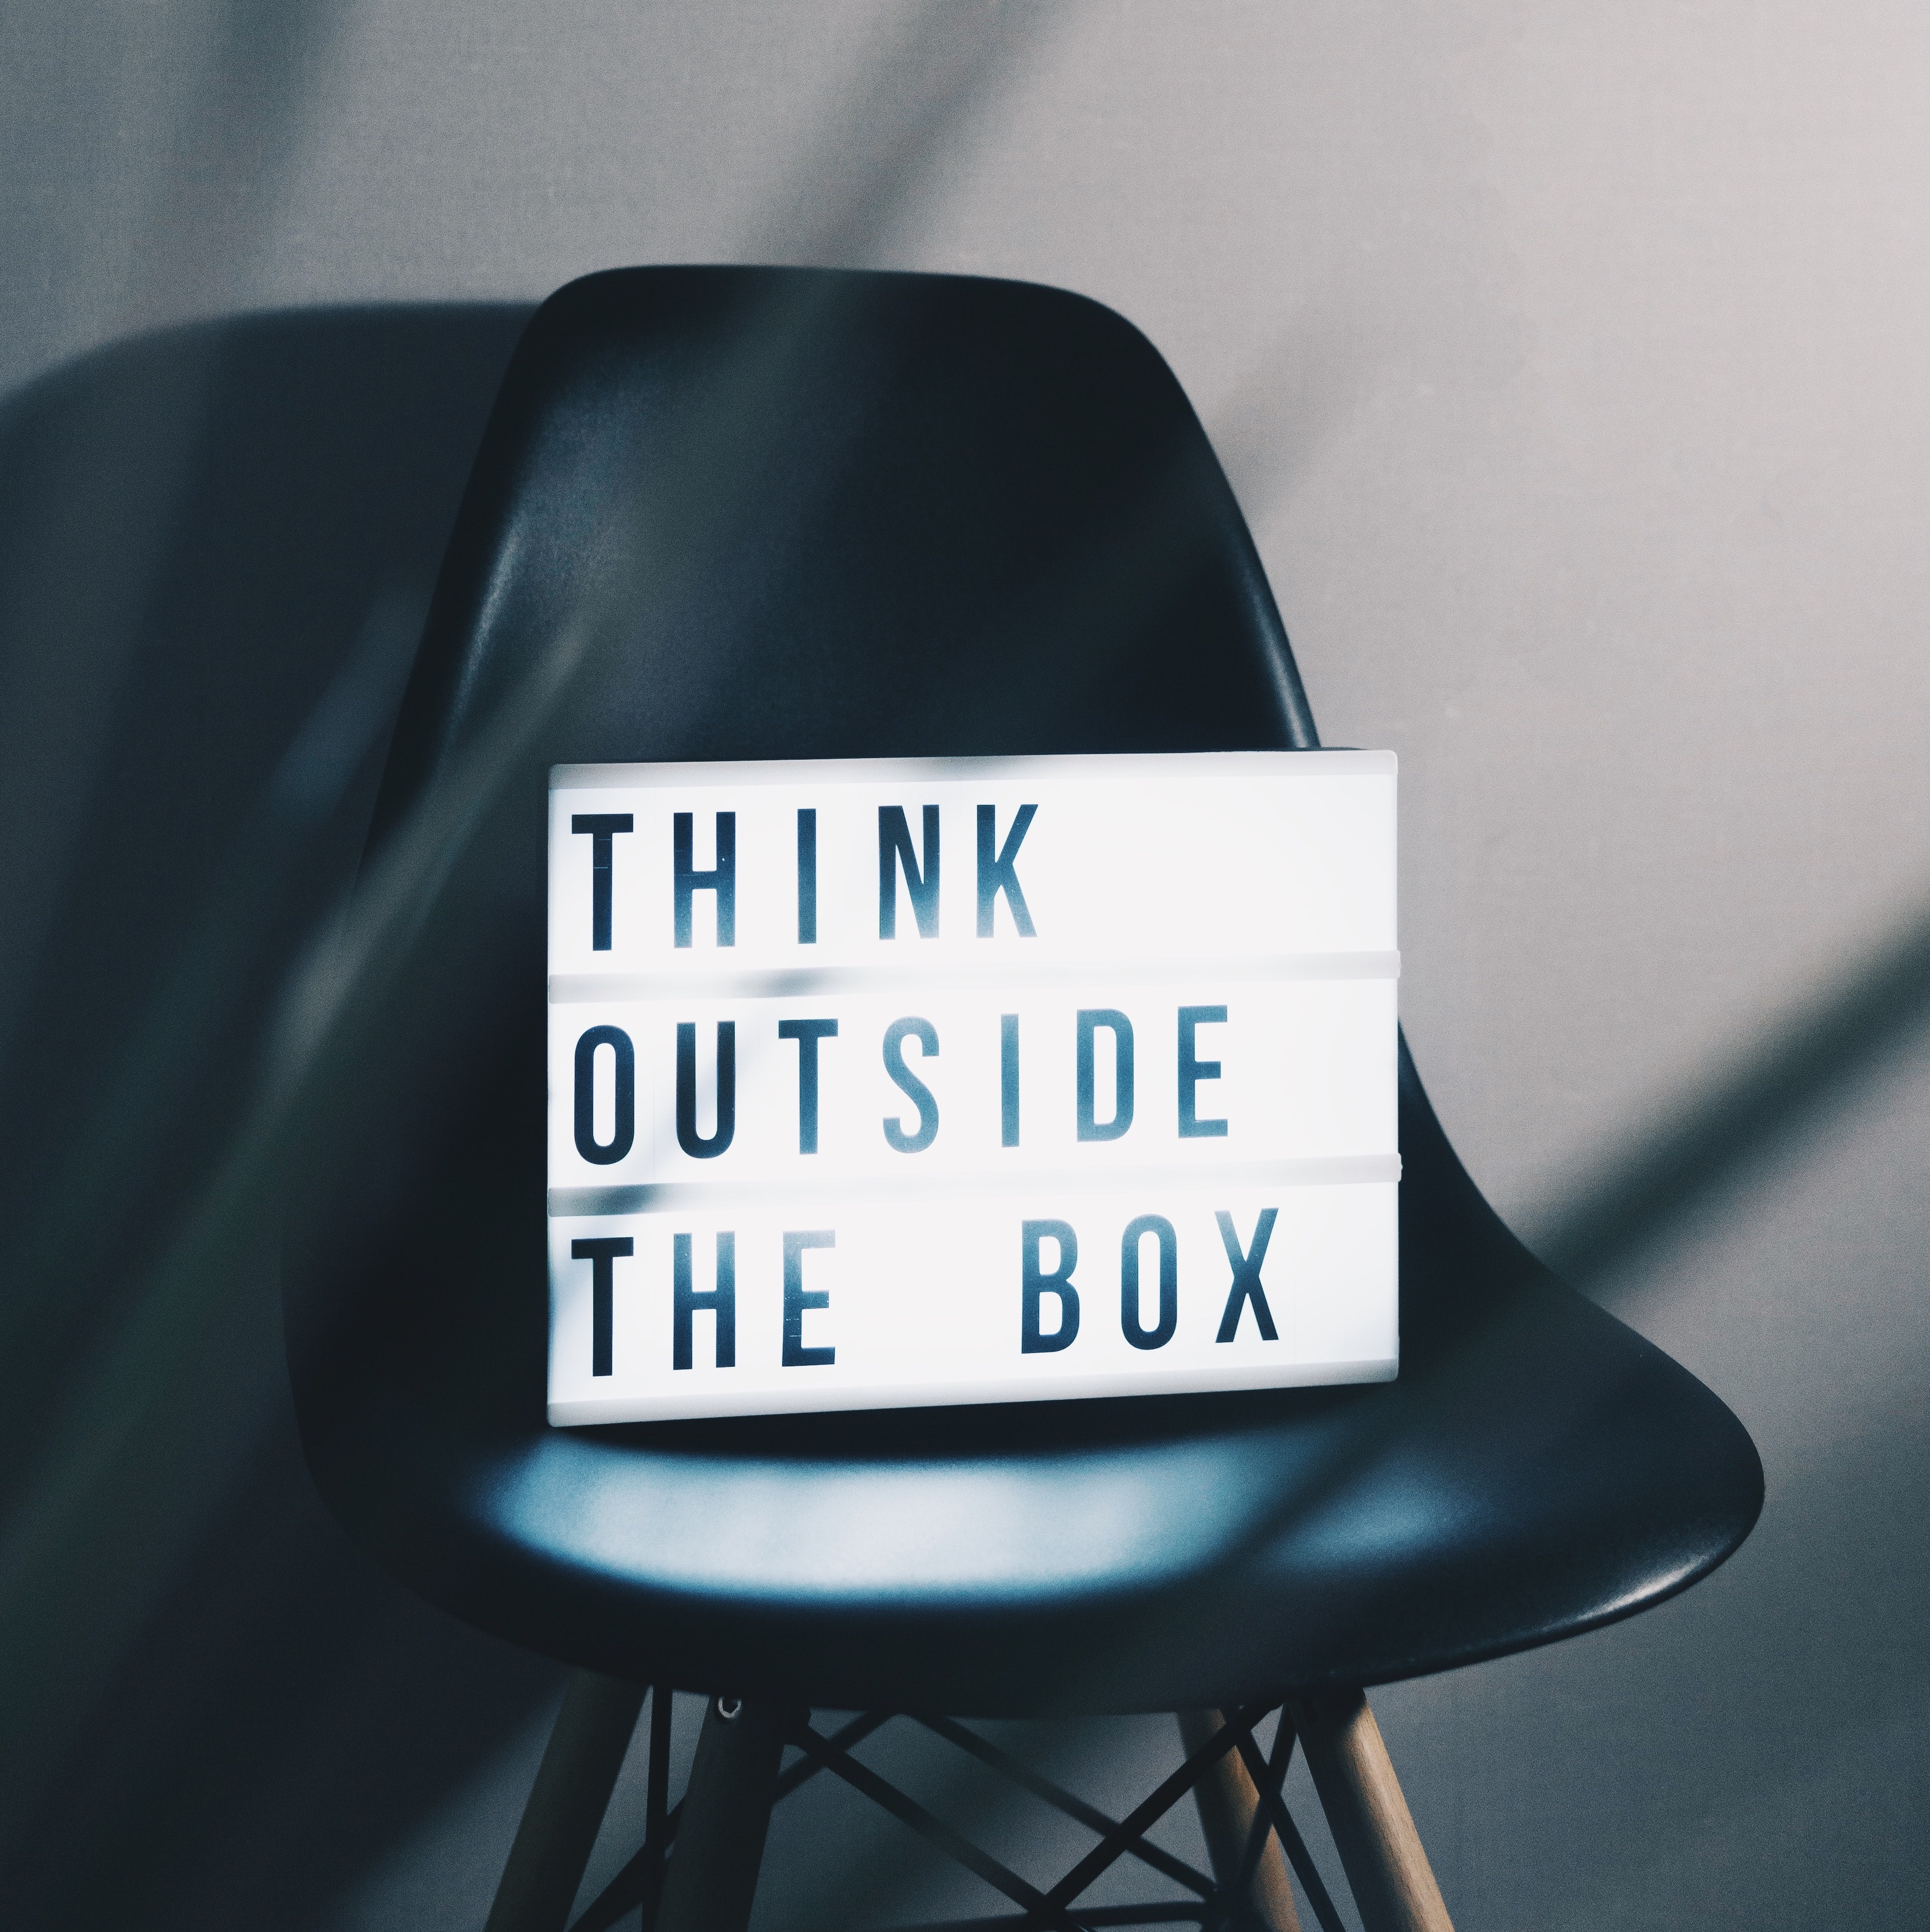 Think outside the box image